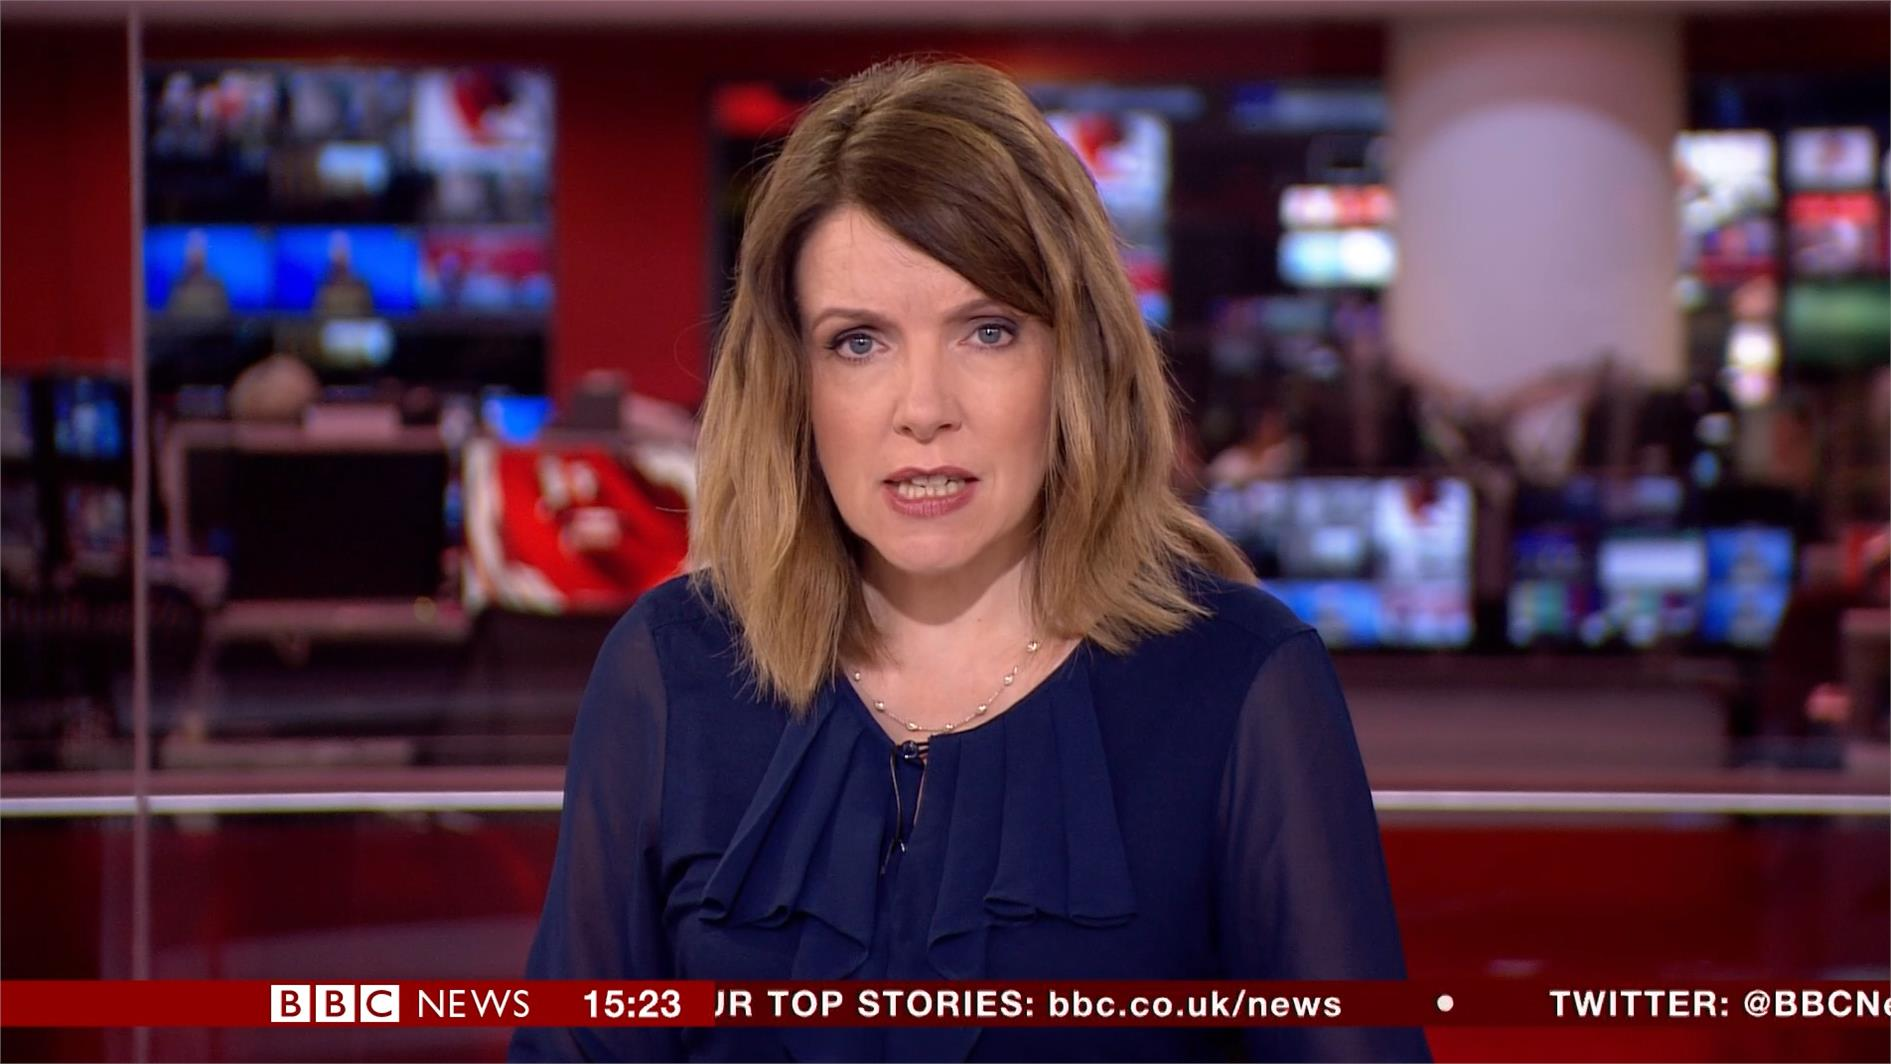 Annita McVeigh - BBC News Presenter (4)